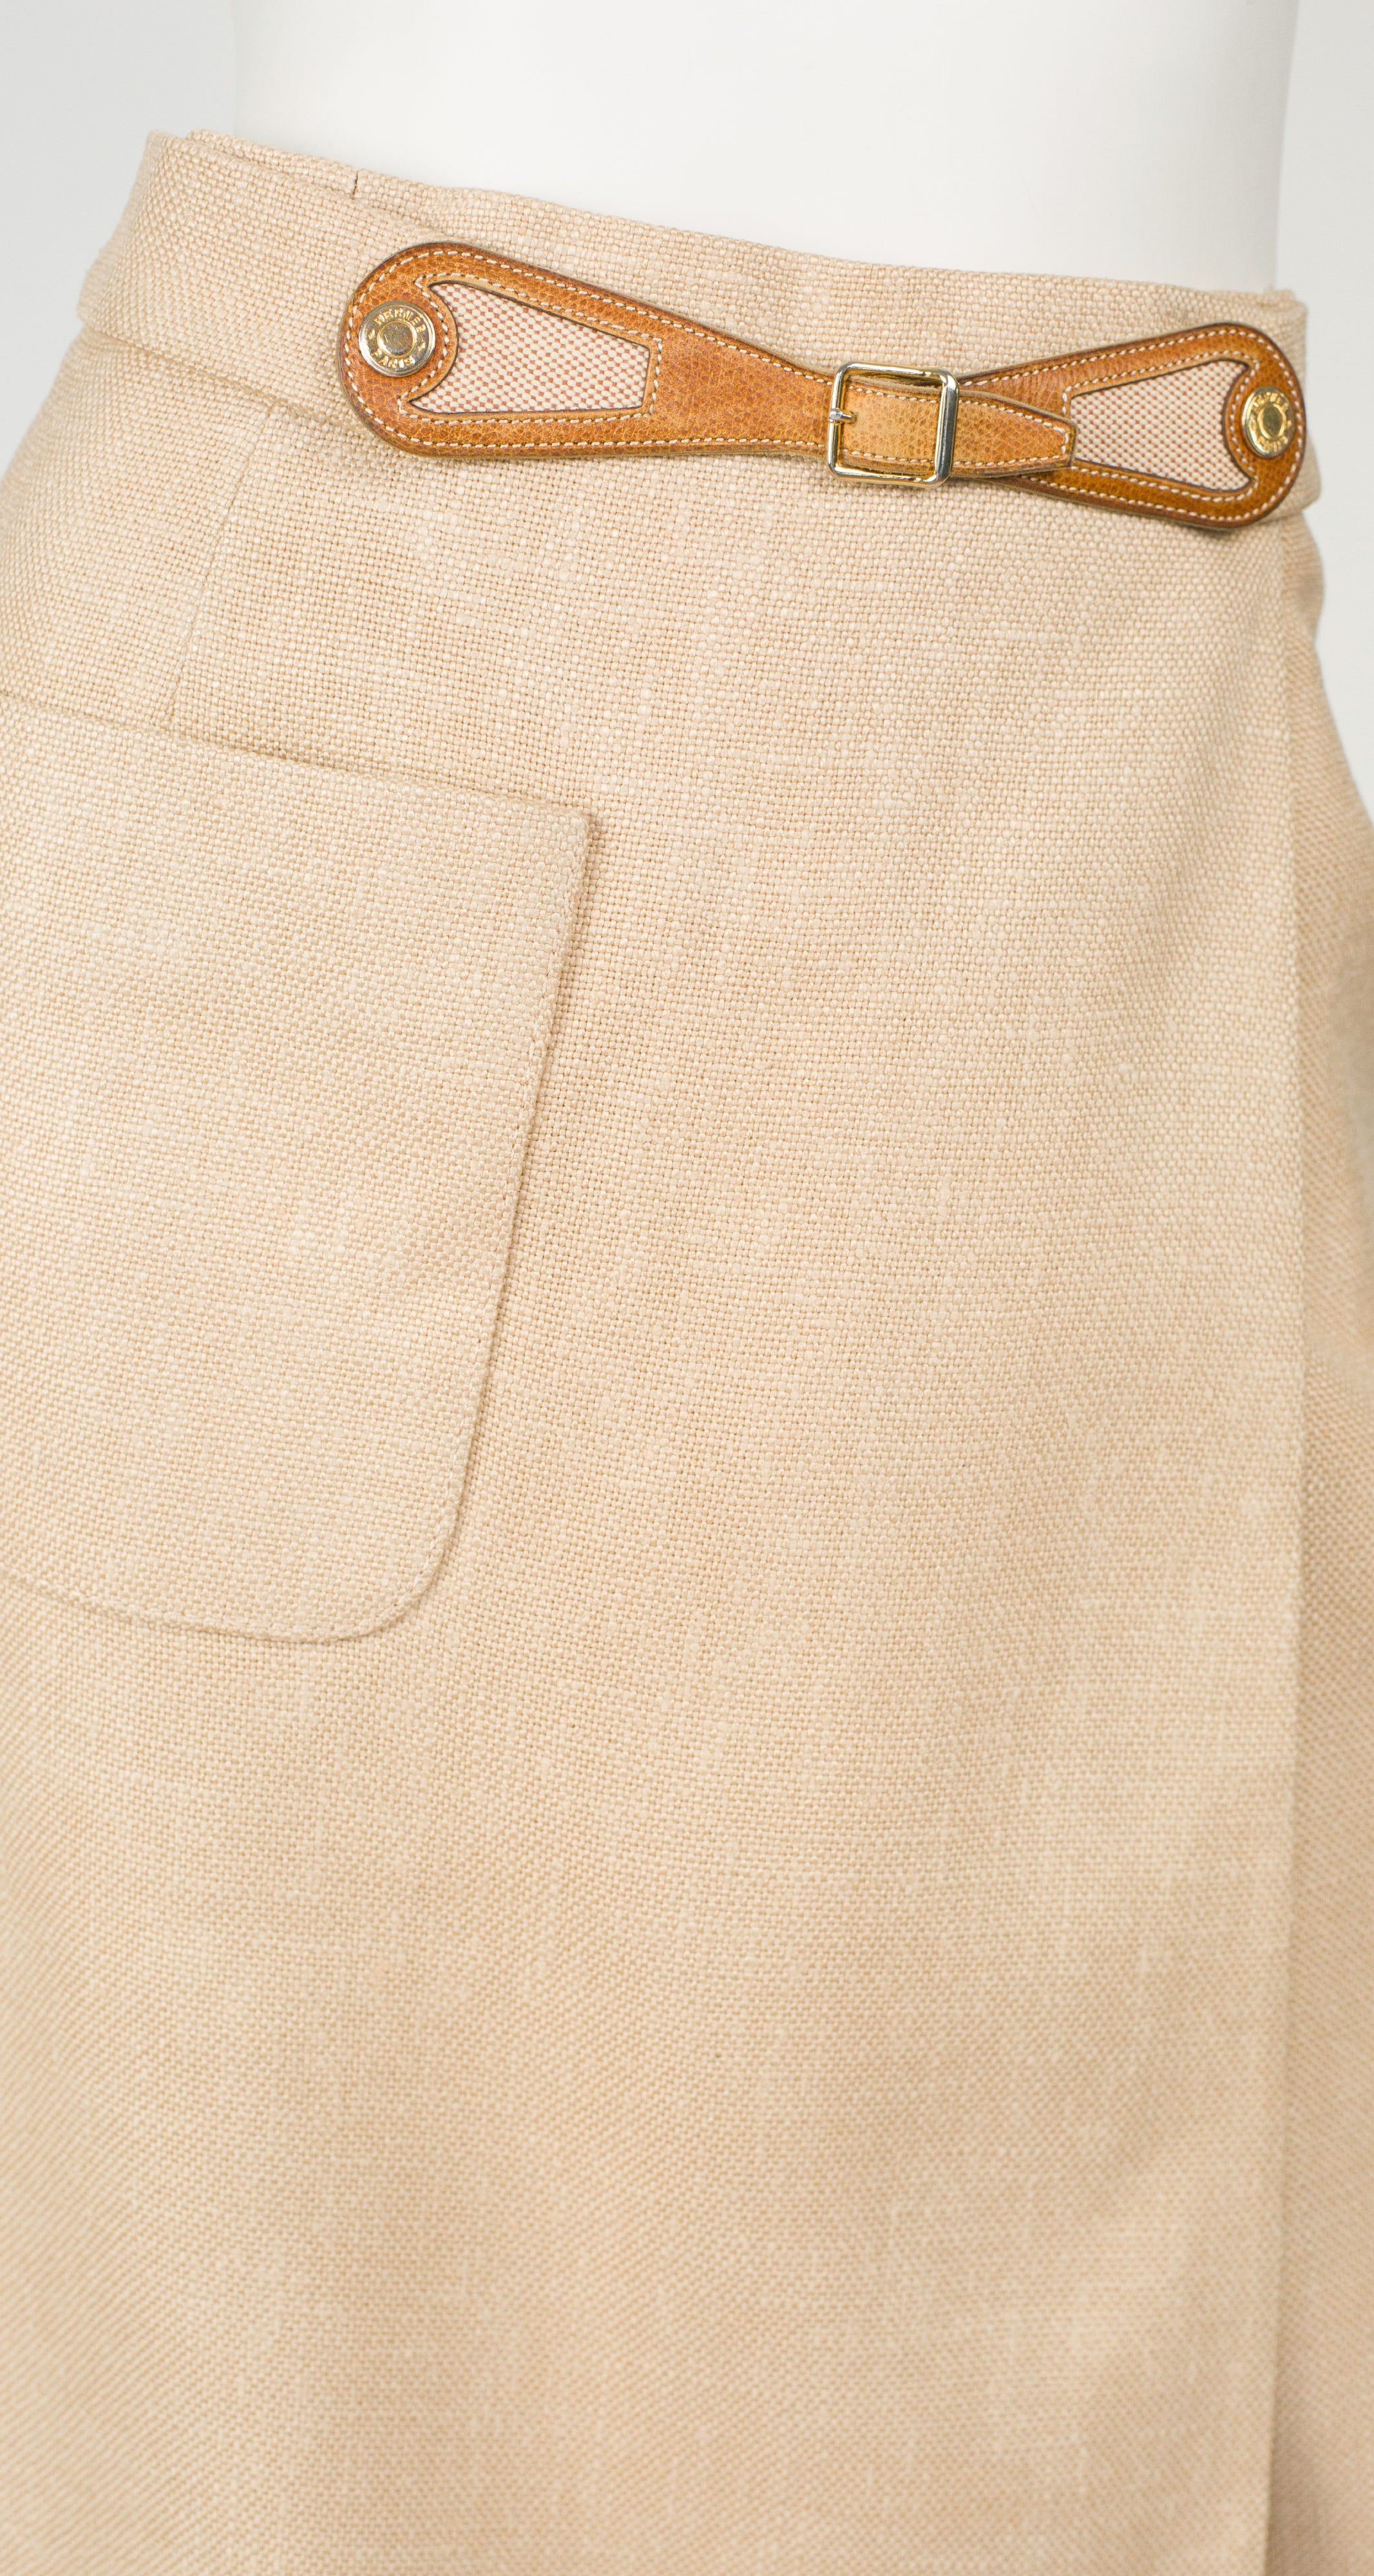 1970s Beige Leather Buckle Wrap Skirt